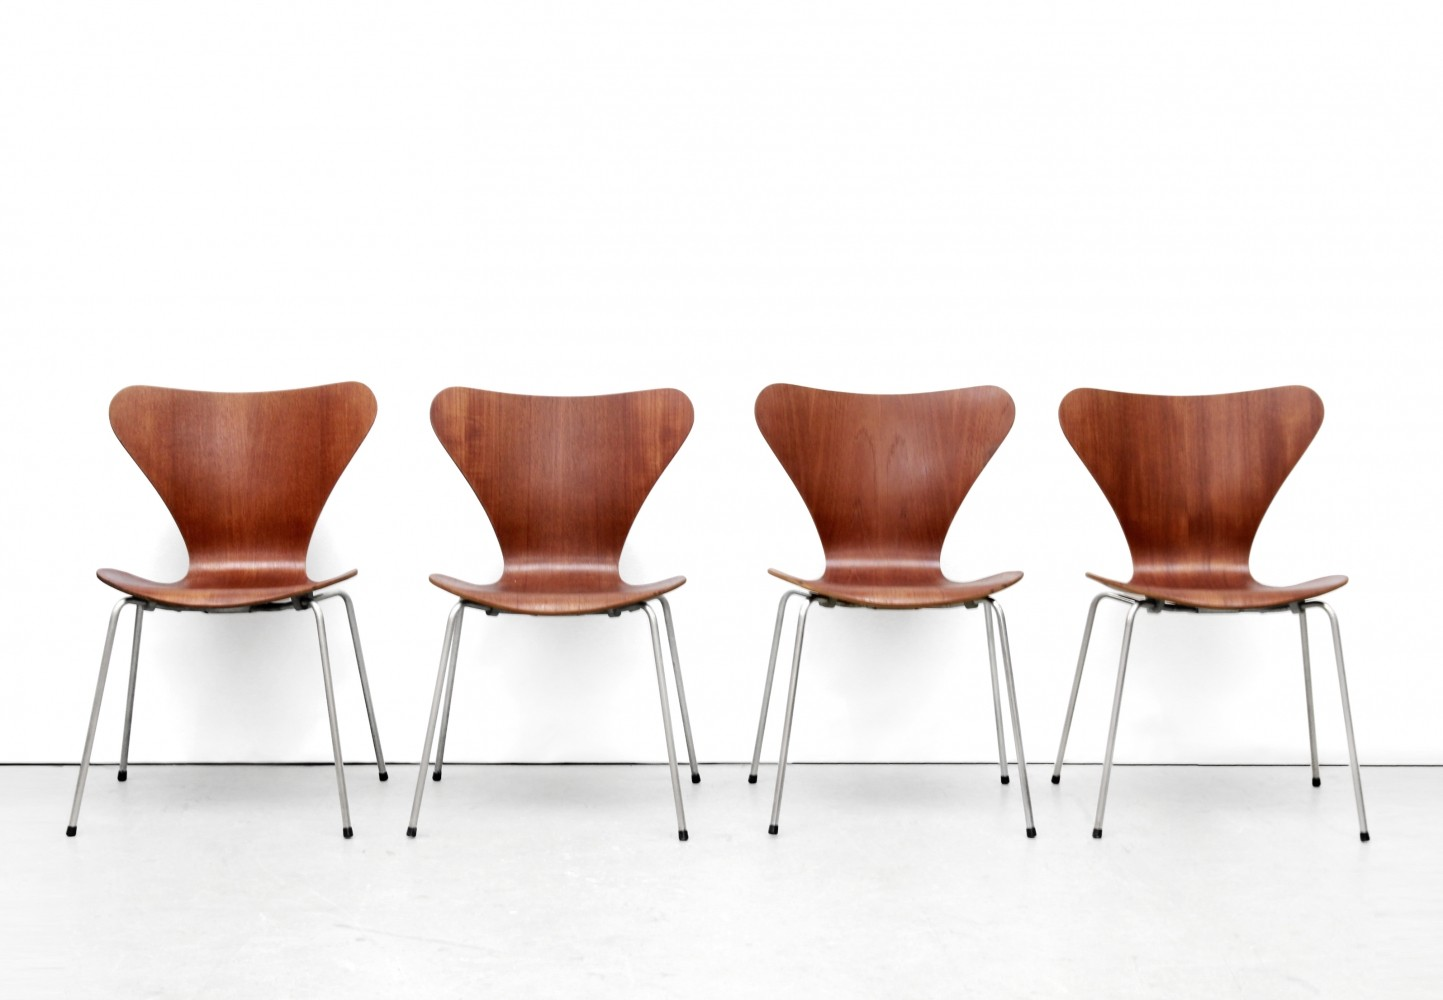 jacobsen furniture. Set Of 4 3107 Butterfly Dinner Chairs By Arne Jacobsen For Fritz Hansen, 1950s Furniture